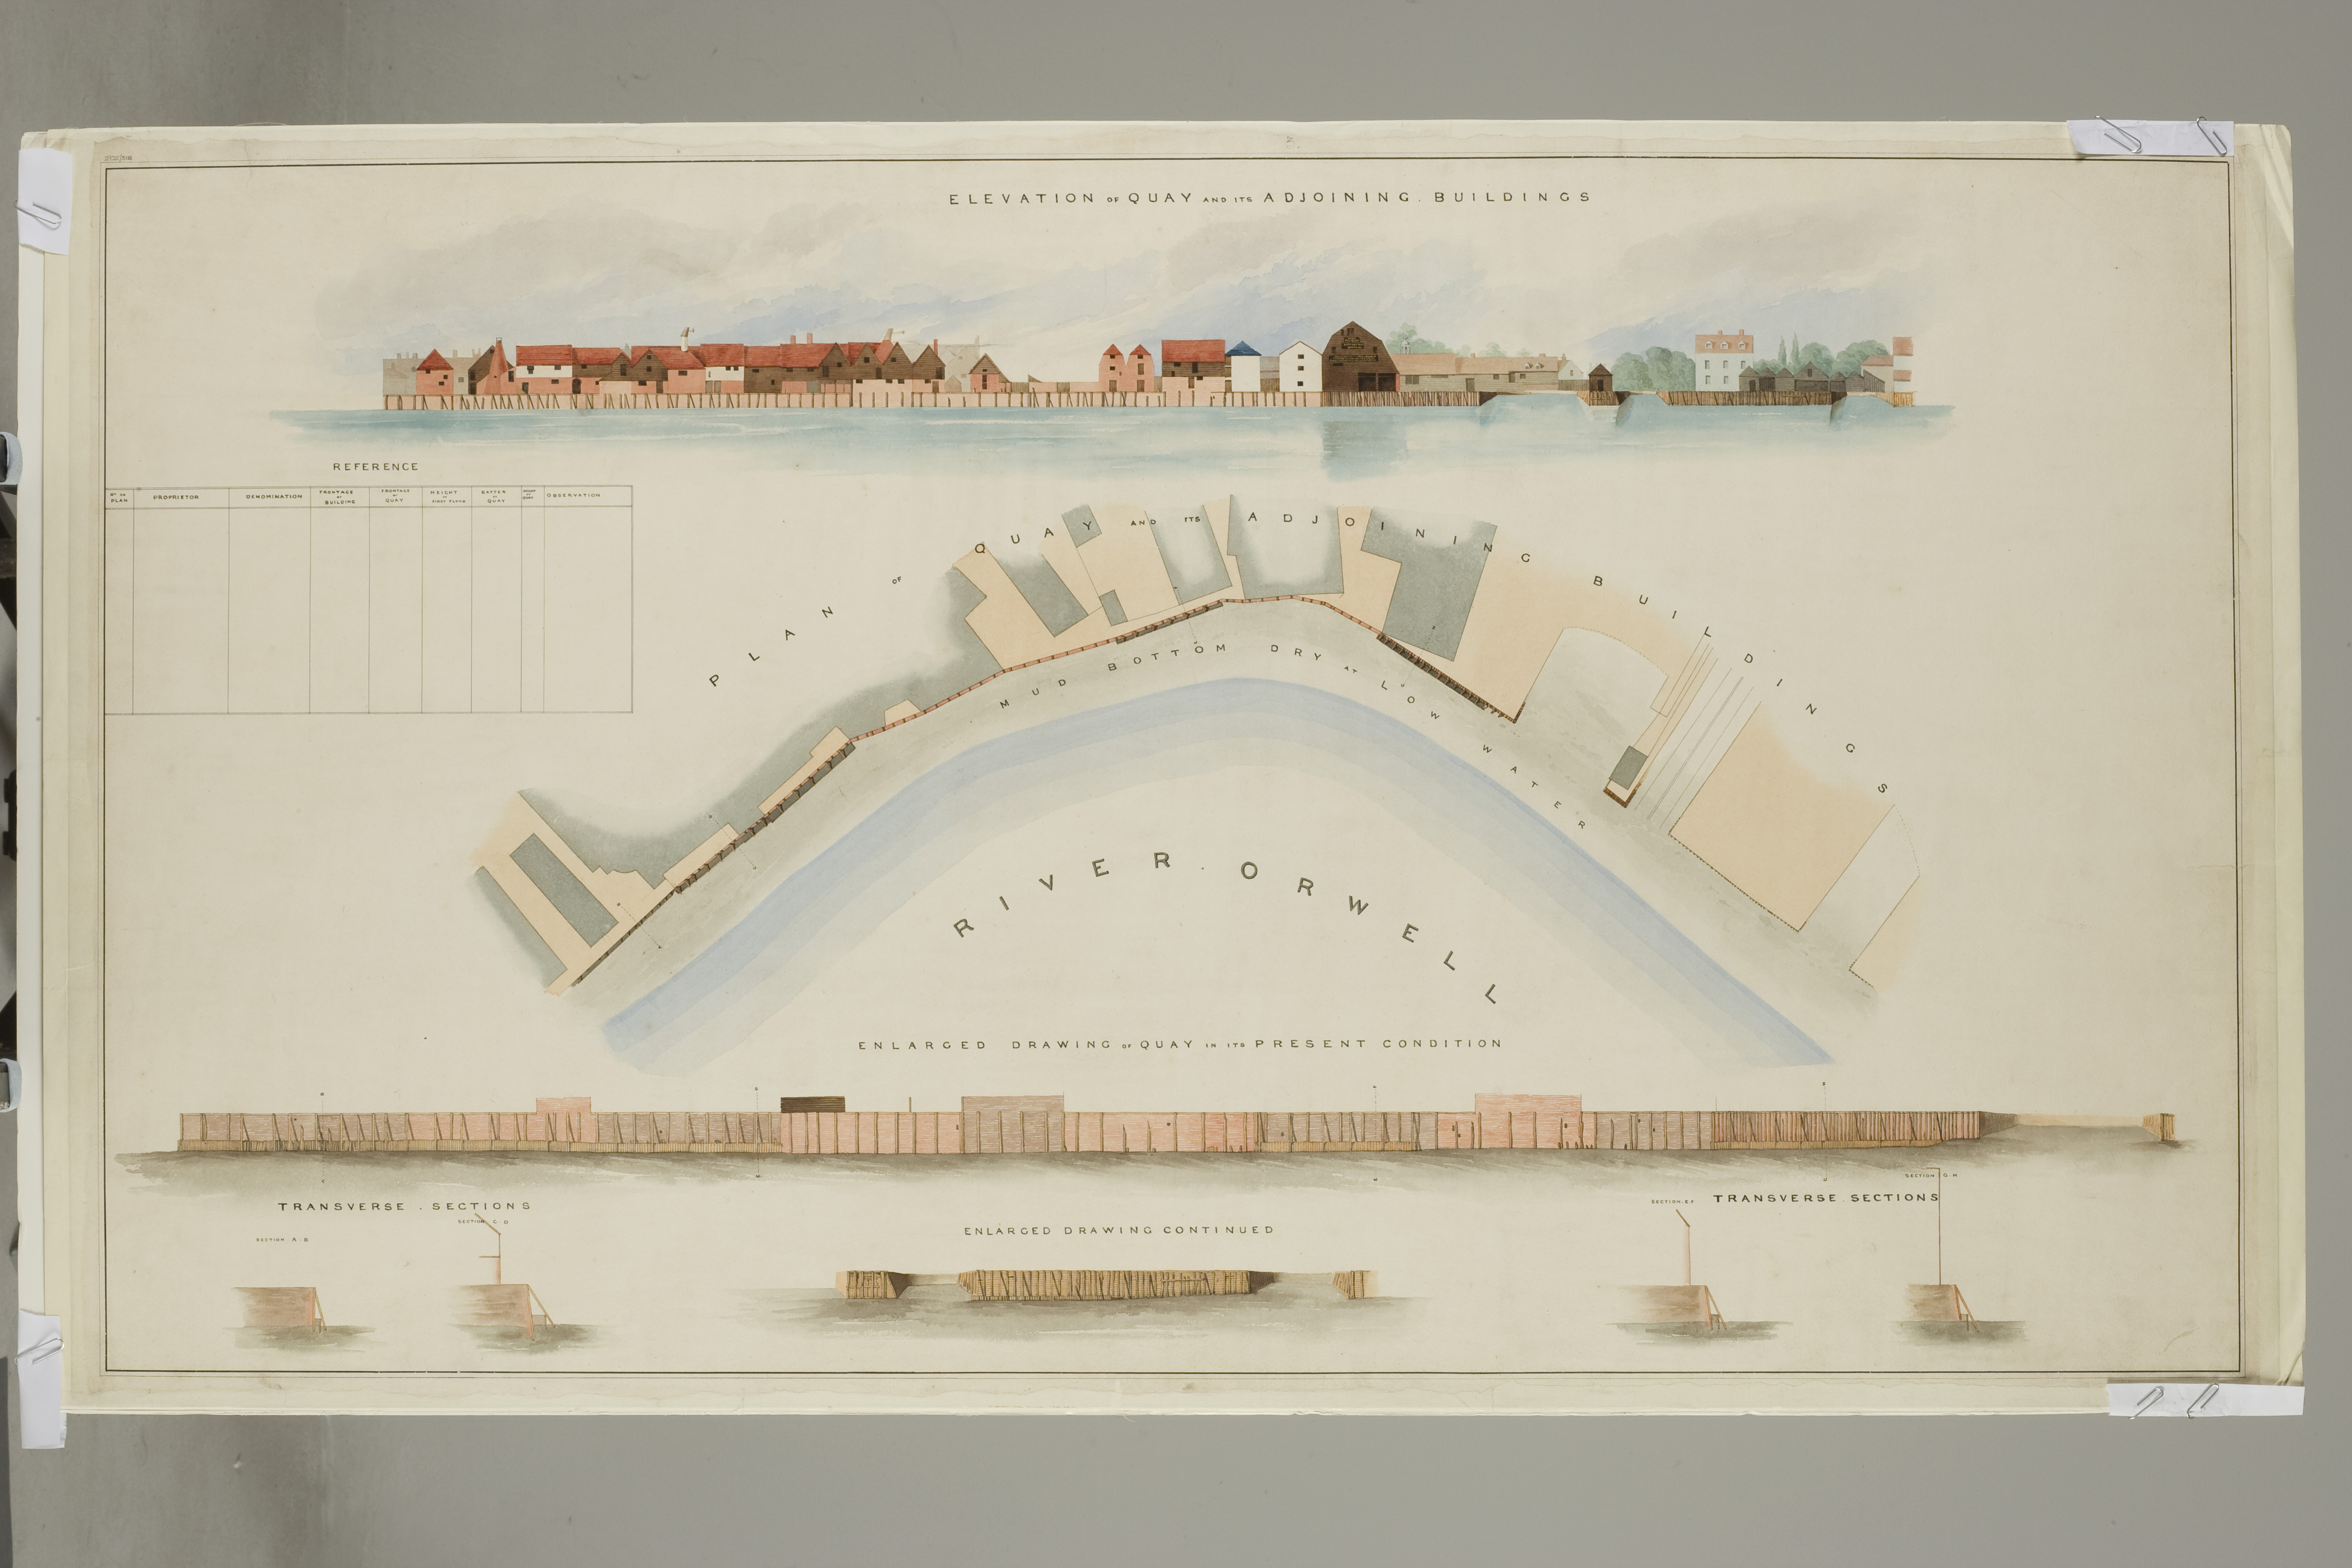 Elevation and plan of quay and its adjoining buildings; enlarged drawing of quay in its present condition, by Edward Caley 1837 - One of a set of 4 watercolours. There are also 2 books of sketches of dock and dock-side buildings, presumably the drafts.